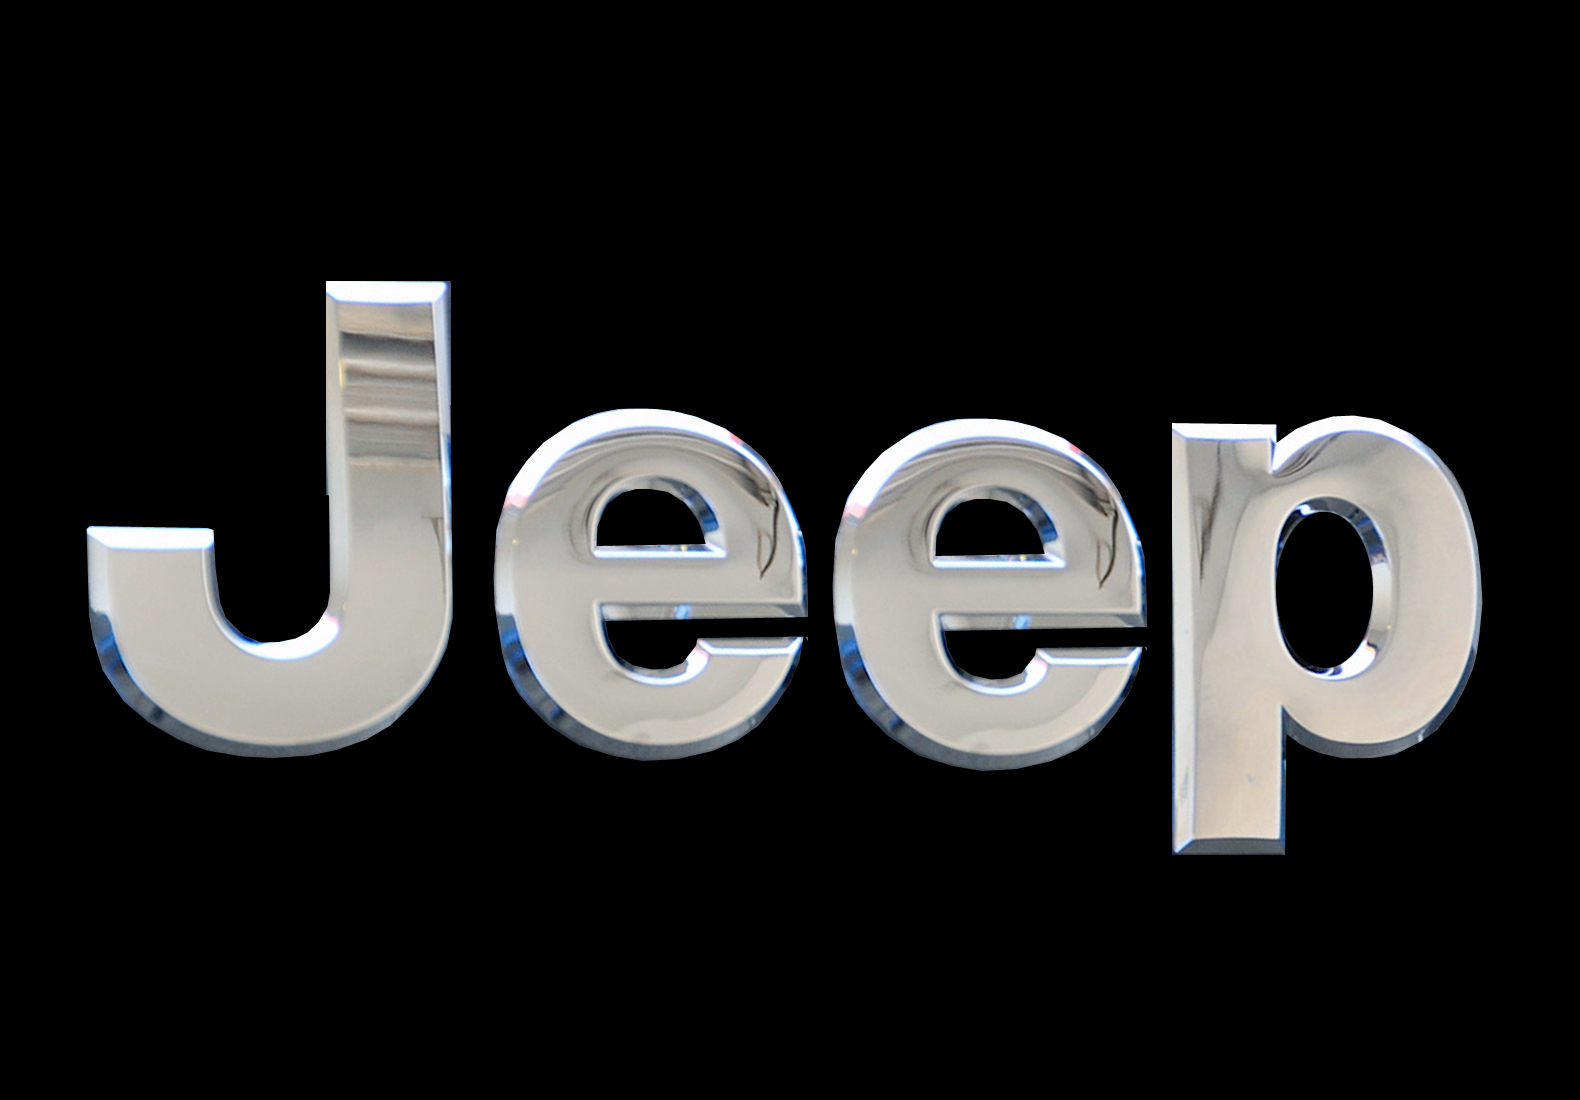 Lincoln Wallpaper Car Jeep Logo Jeep Car Symbol Meaning And History Car Brand